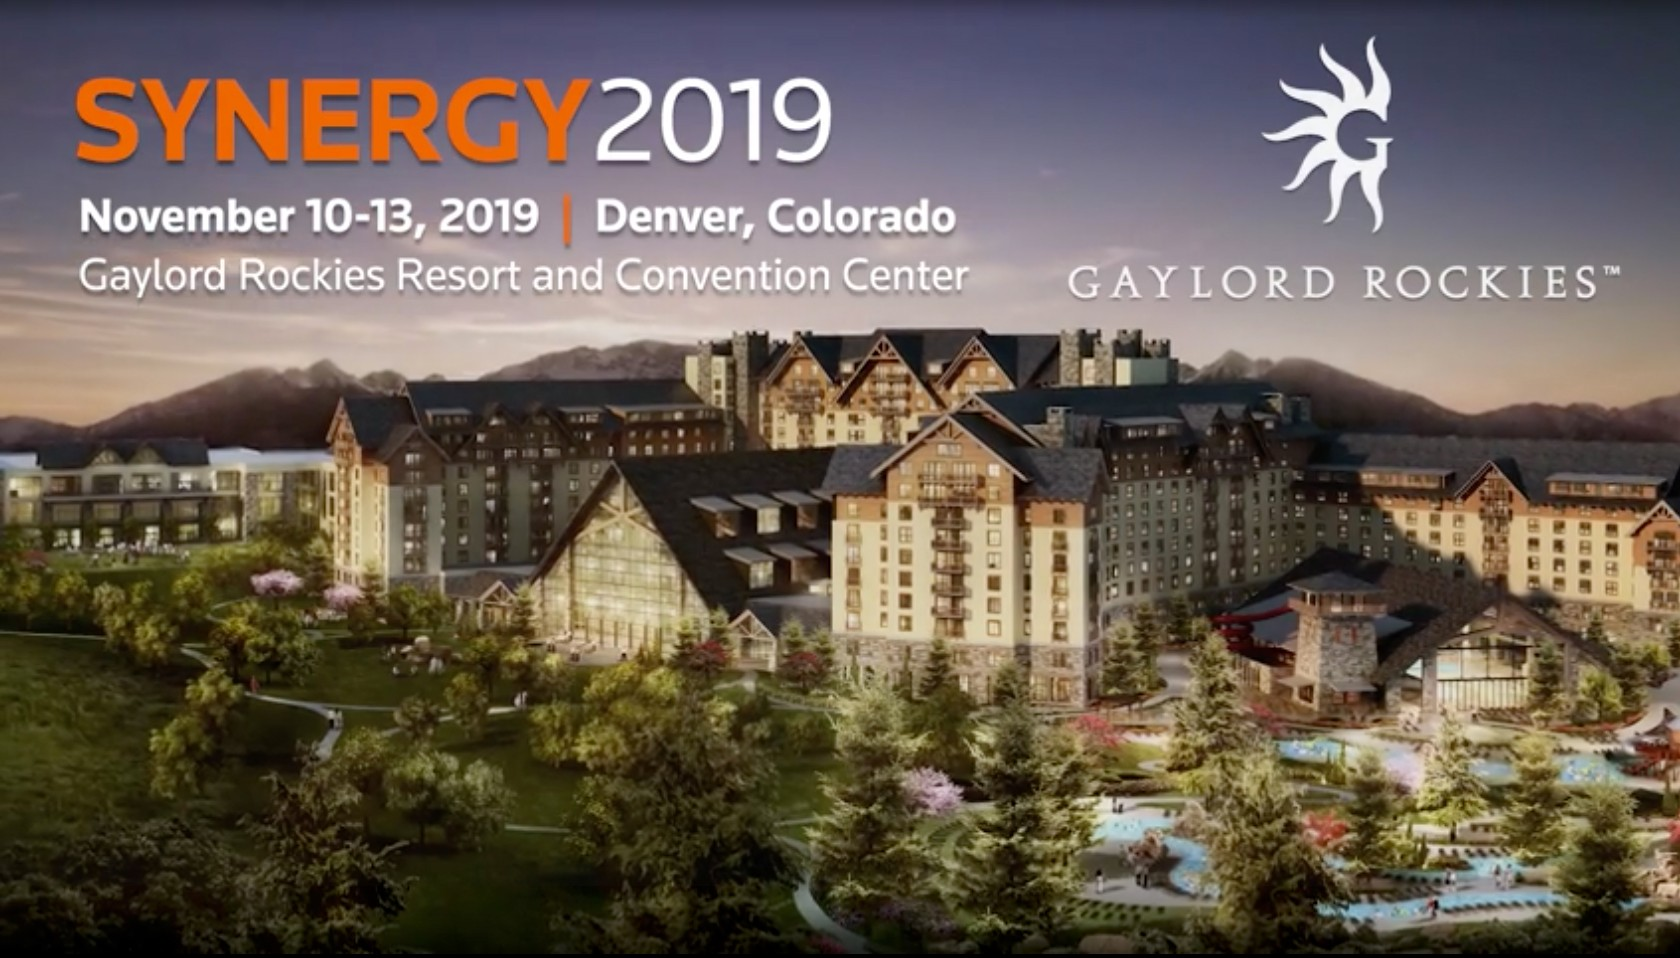 Learn more about SYNERGY 2019